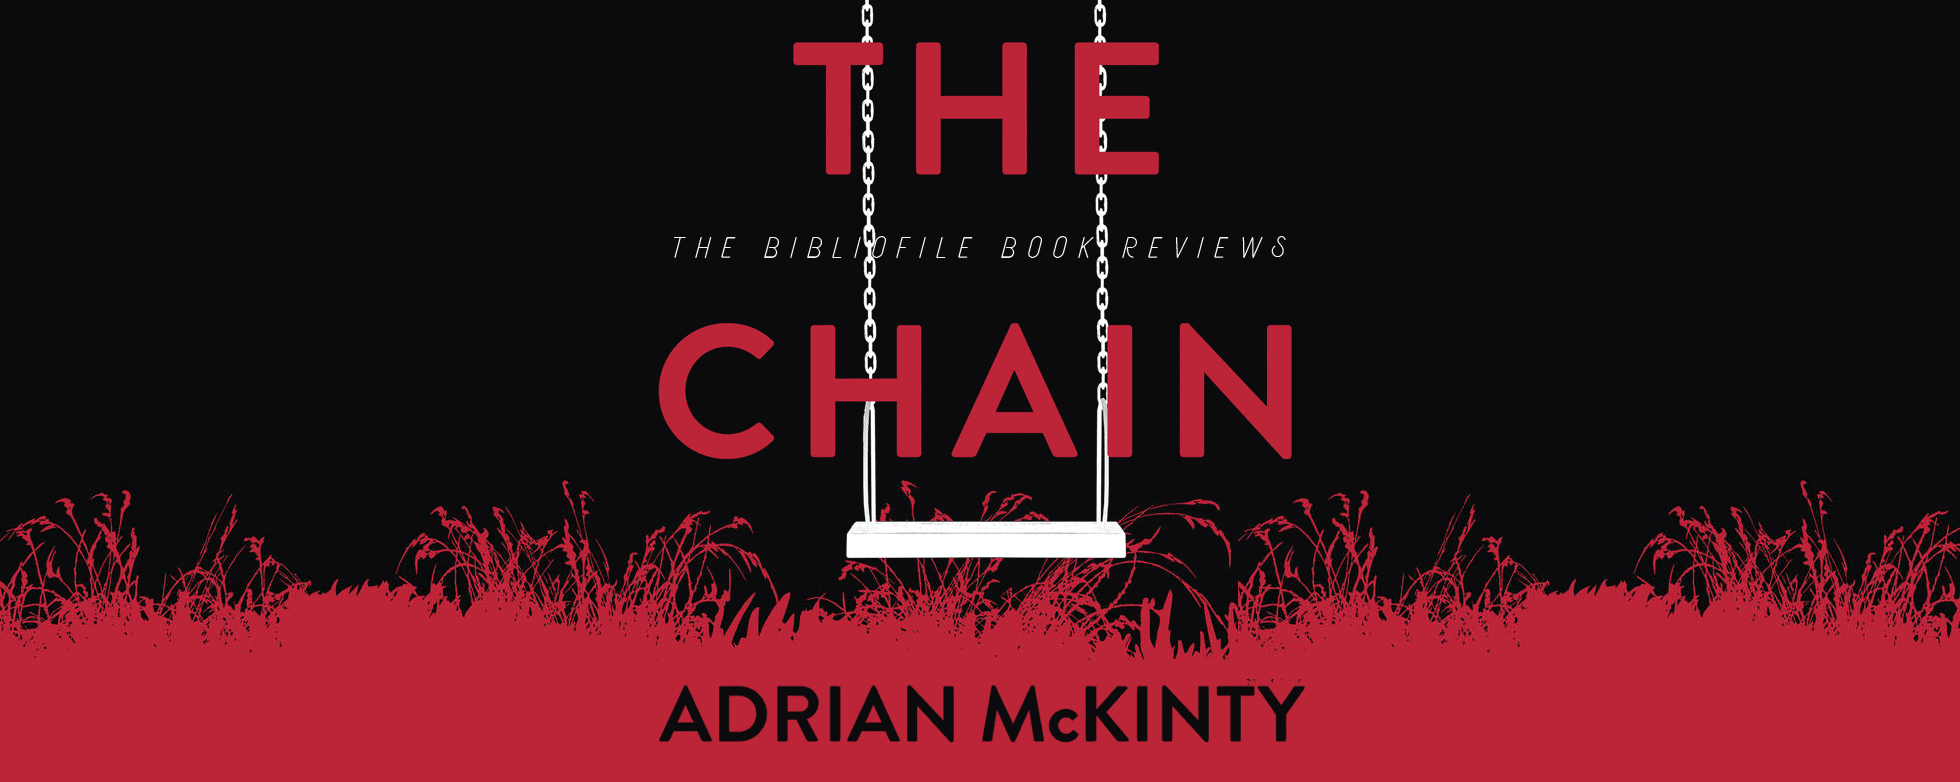 the chain adrian mckinty book review plot summary synopsis detailed recap ending spoilers